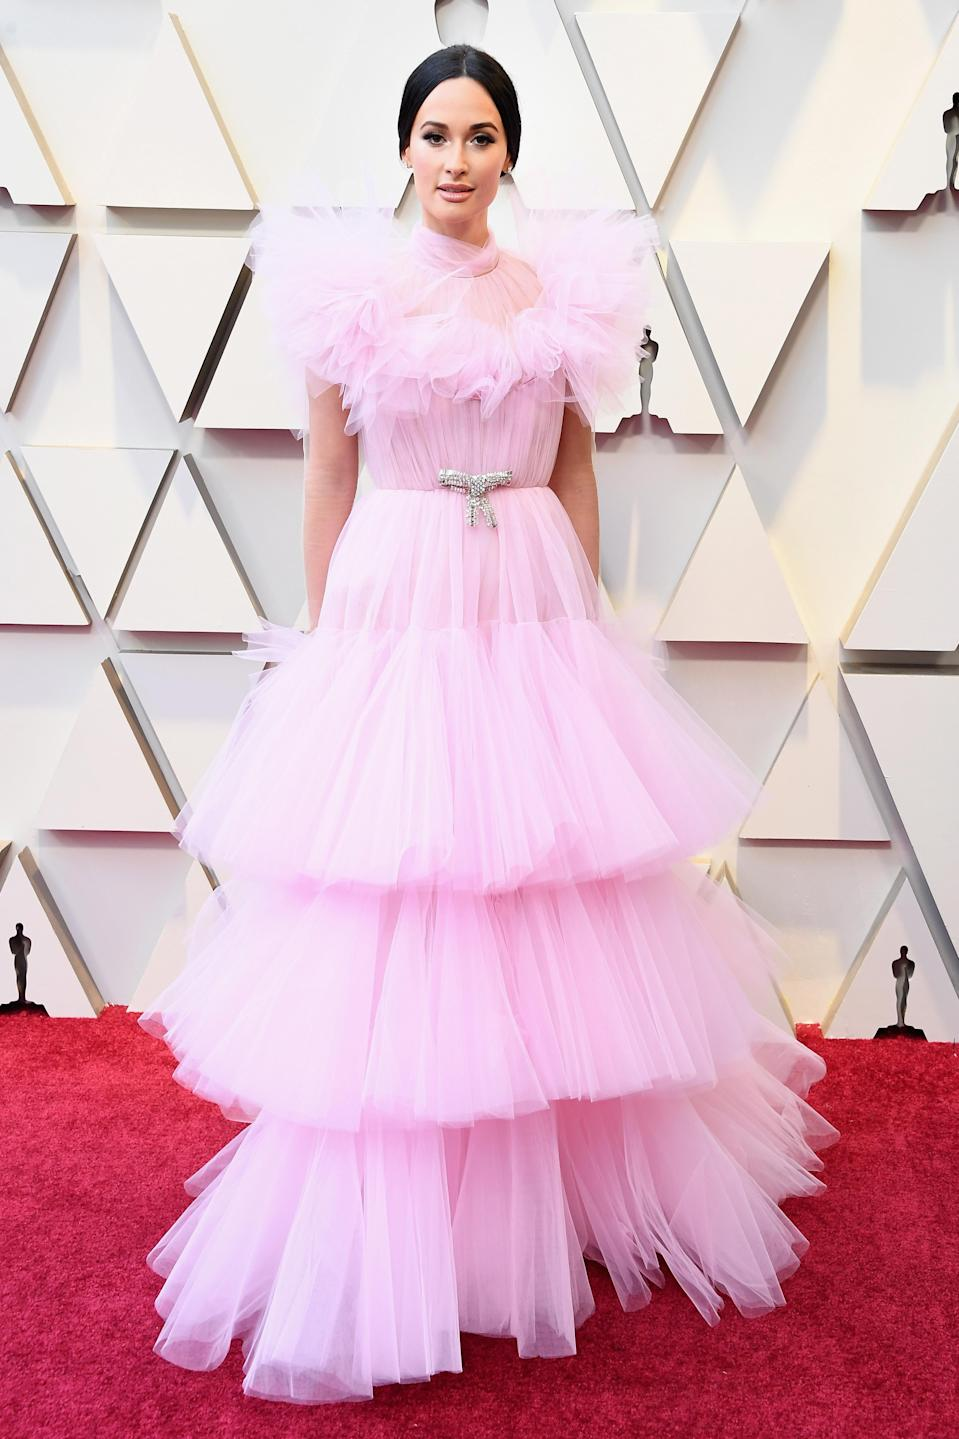 """<p>The """"Space Cowboy"""" singer and Oscar presenter turned heads in a ruffled pink gown by Giambattista Valli. (Image via Getty Images) </p>"""